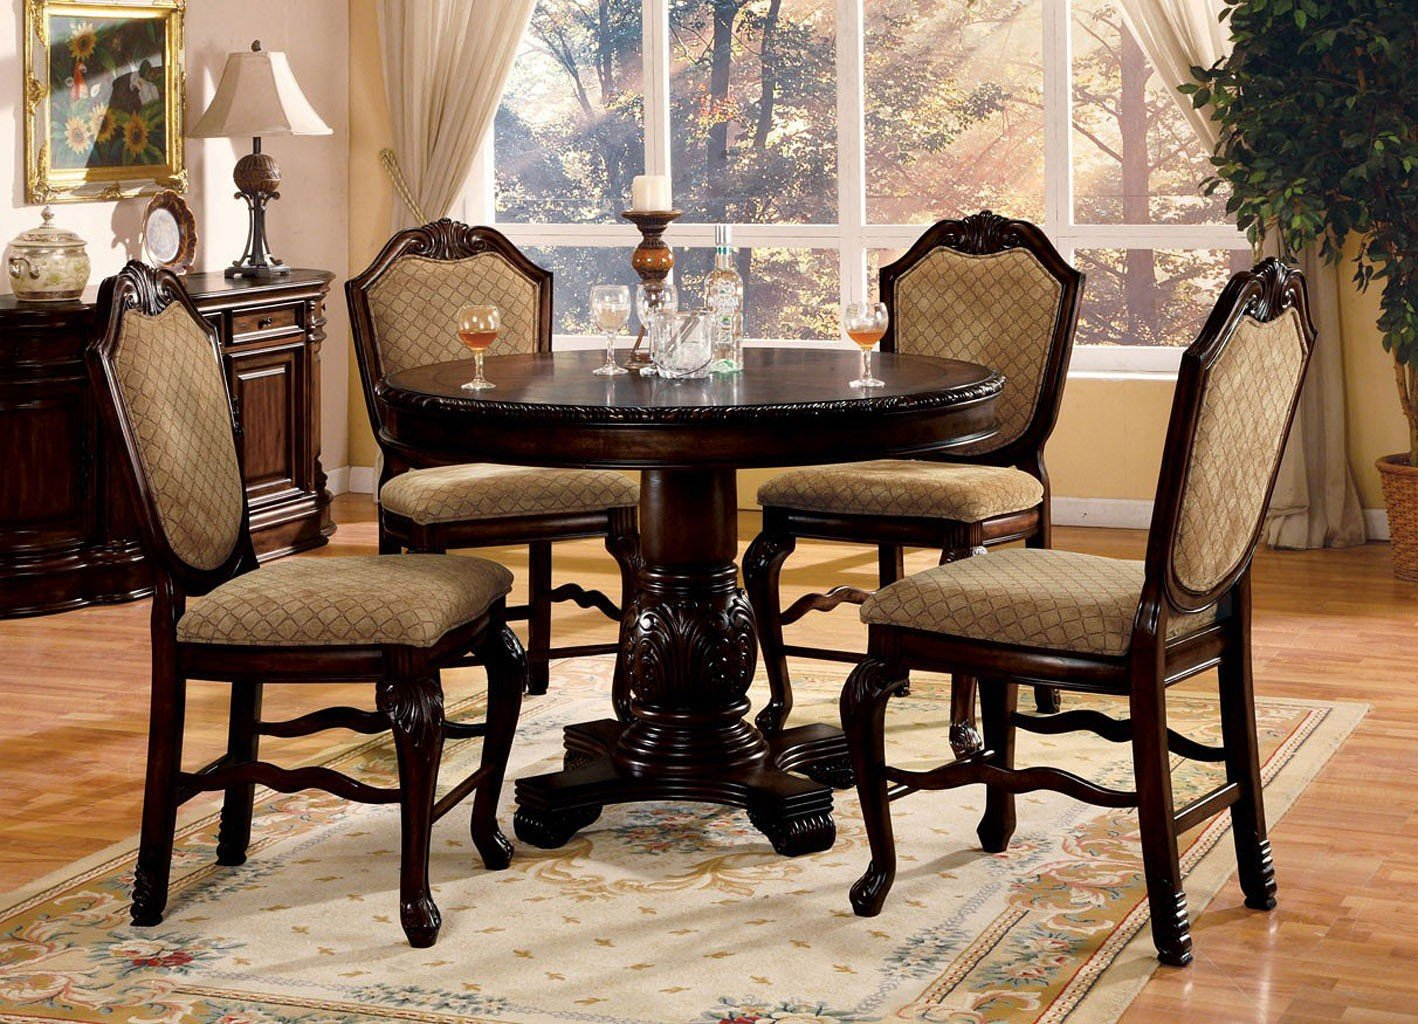 Chateau De Ville Counter Height Dining Set (Espresso)